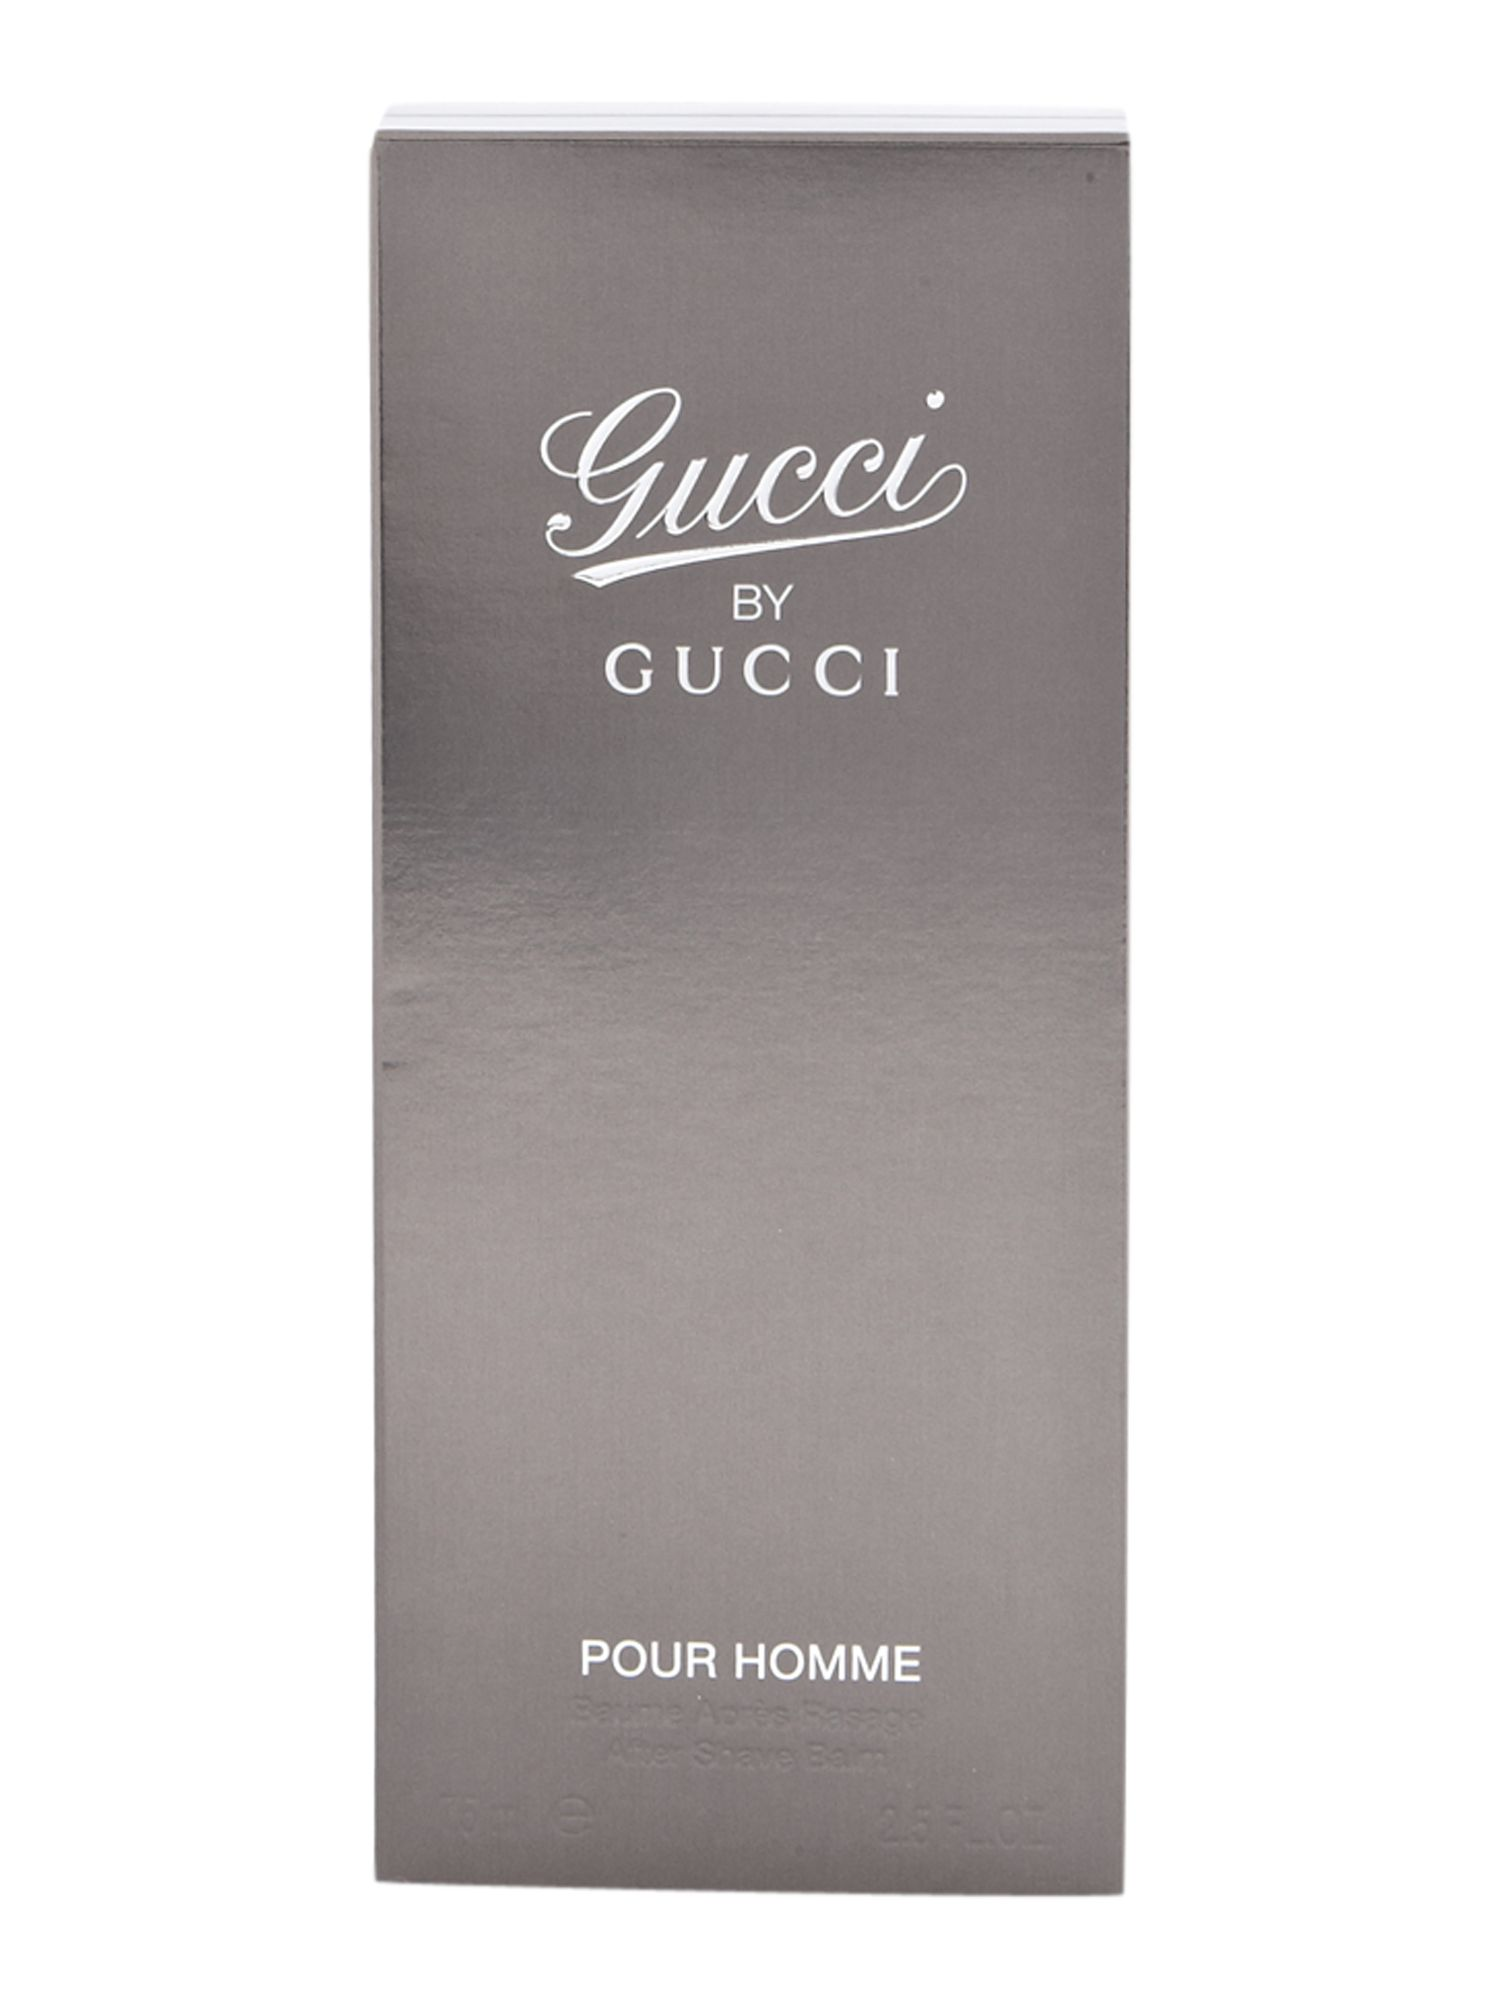 Gucci by Gucci Pour Homme Aftershave Balm 75ml